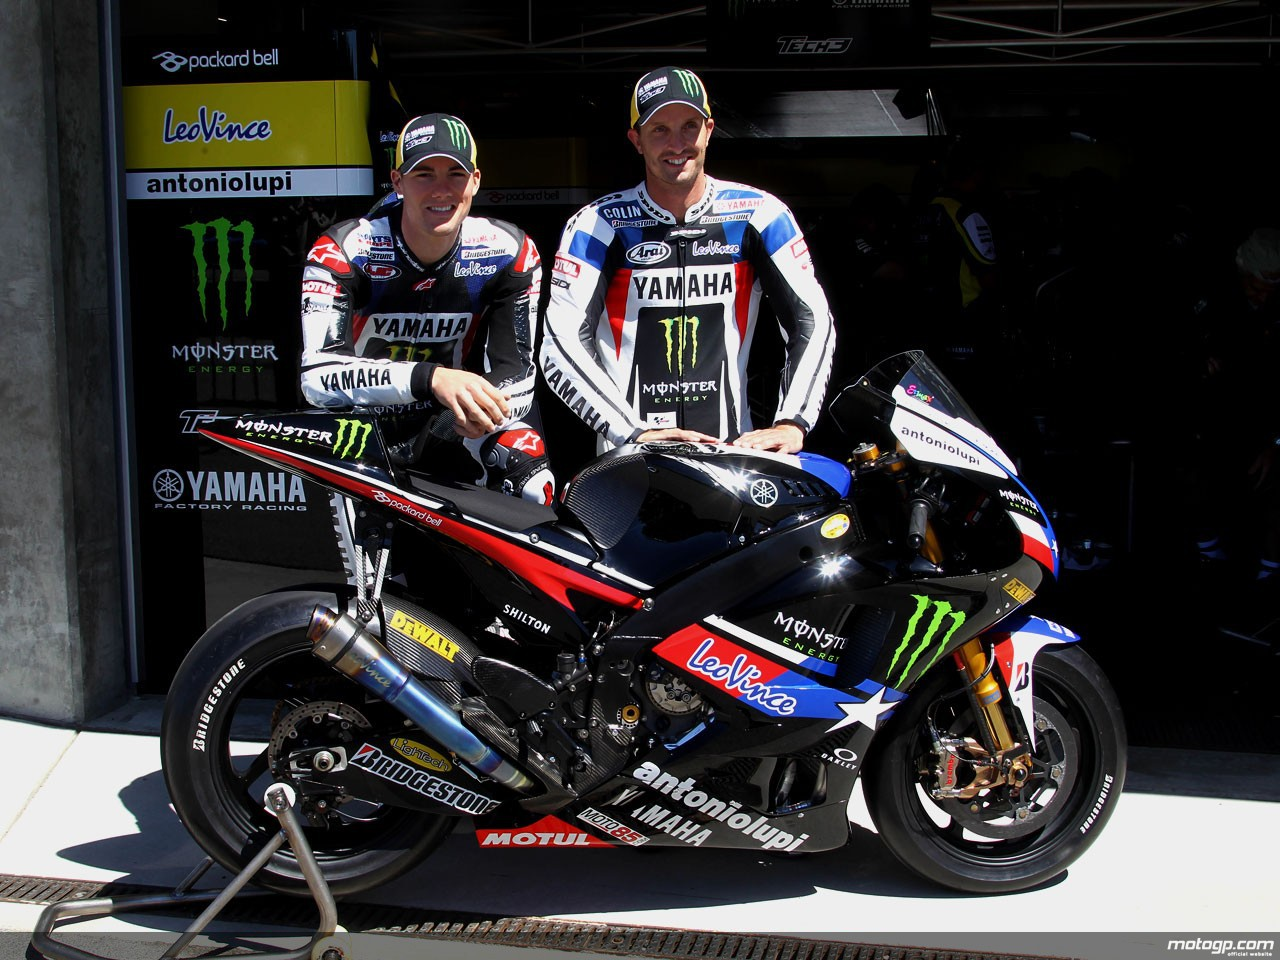 monster yamaha tech 3 unveil 39 team texas 39 livery. Black Bedroom Furniture Sets. Home Design Ideas